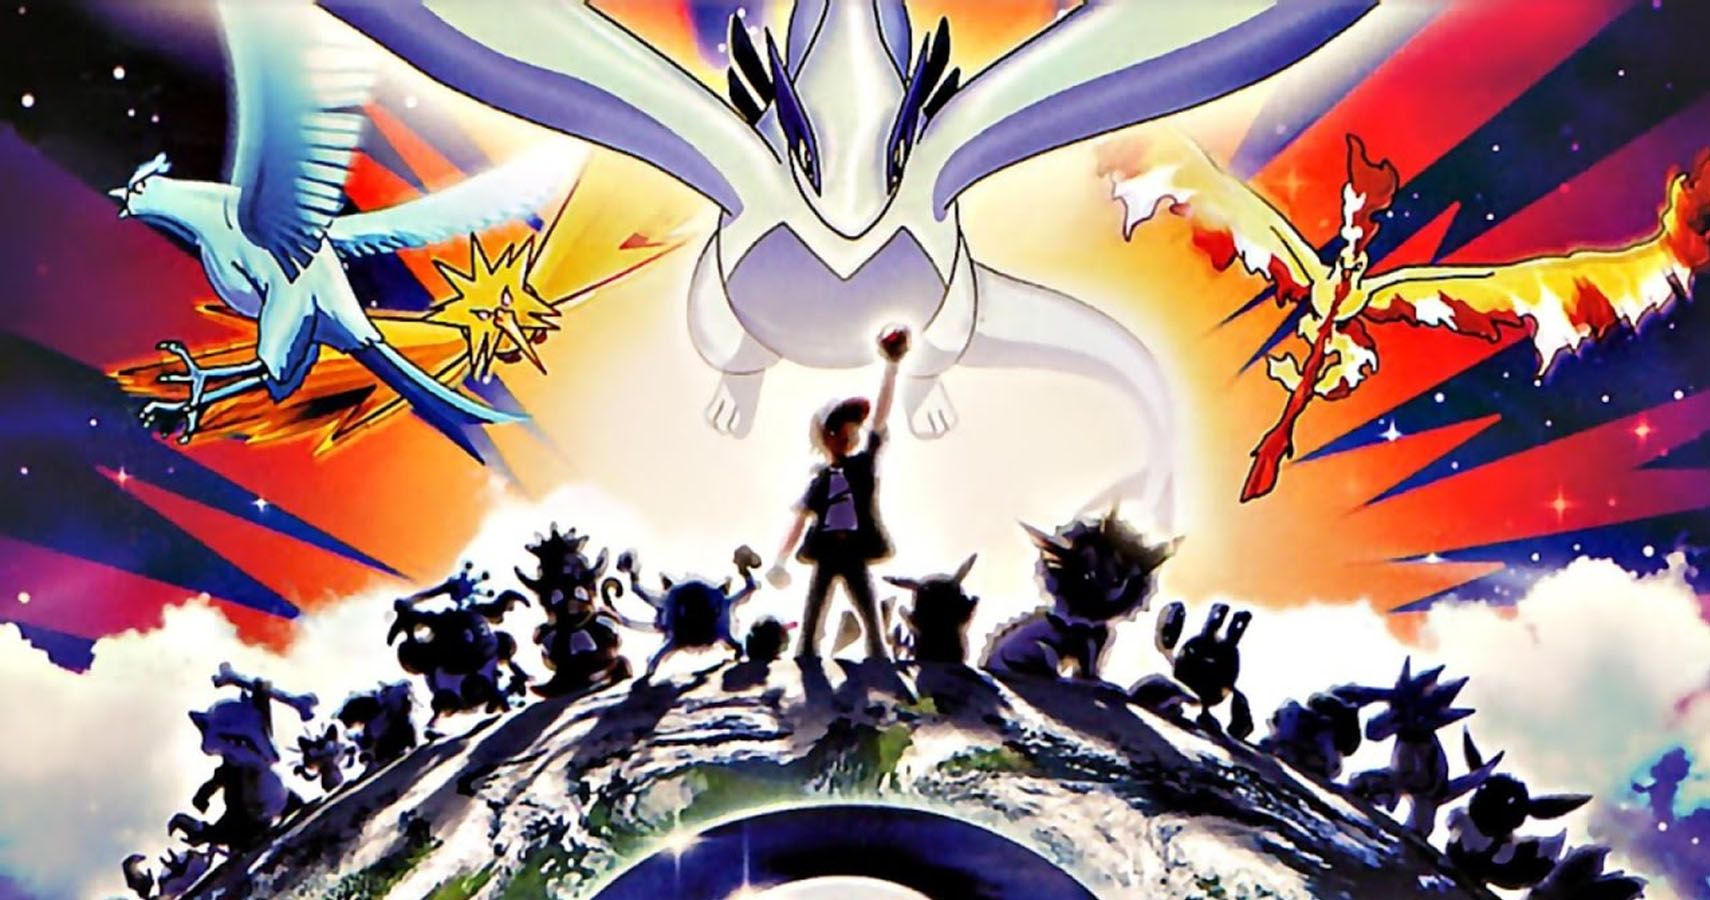 Pokémon: 10 Best Films In The Series, Ranked | CBR